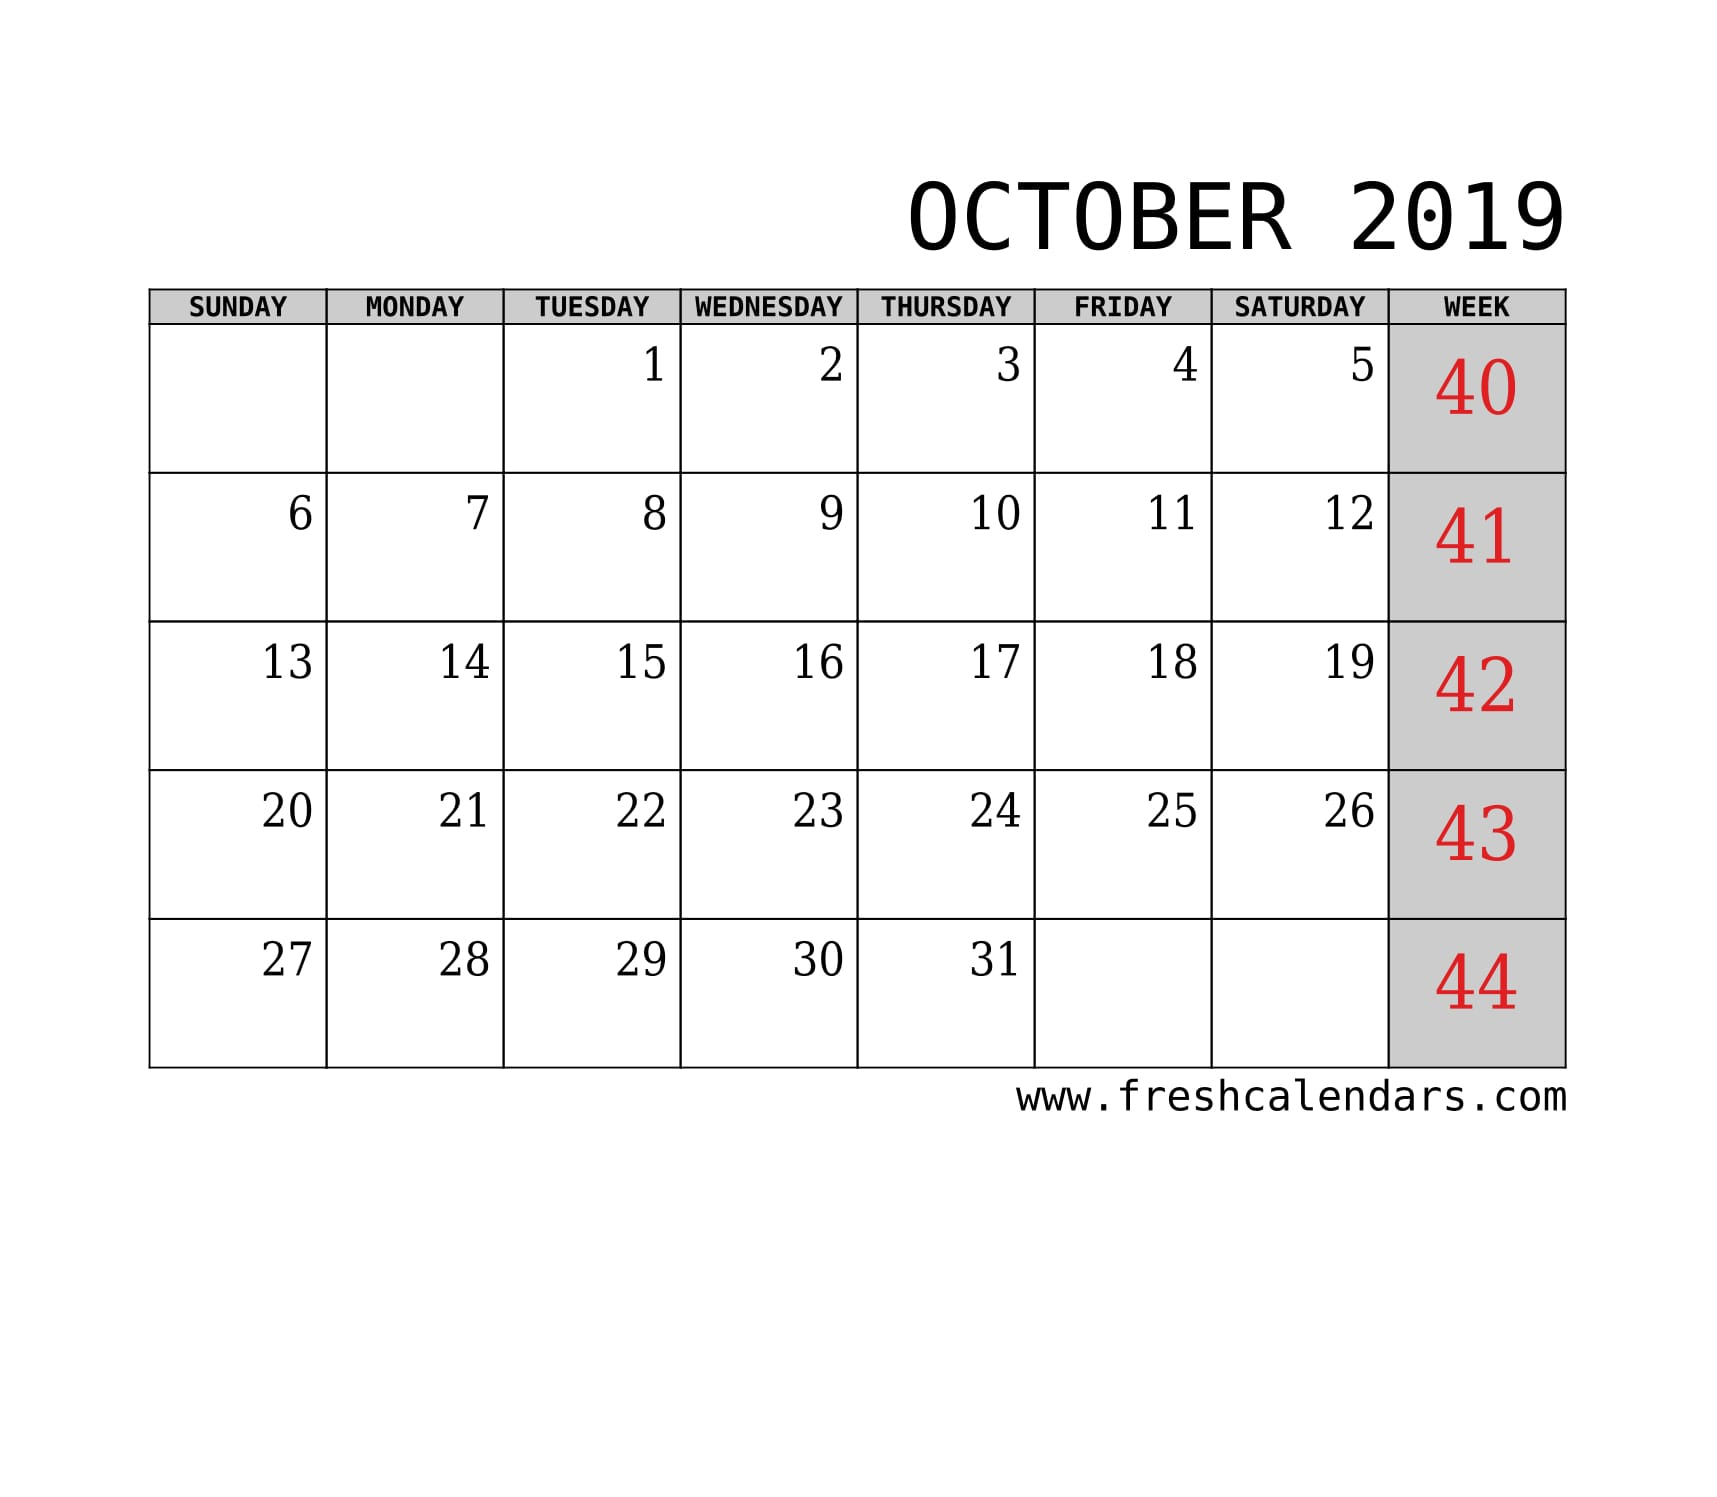 October 2019 Calendar With Week Template Printable